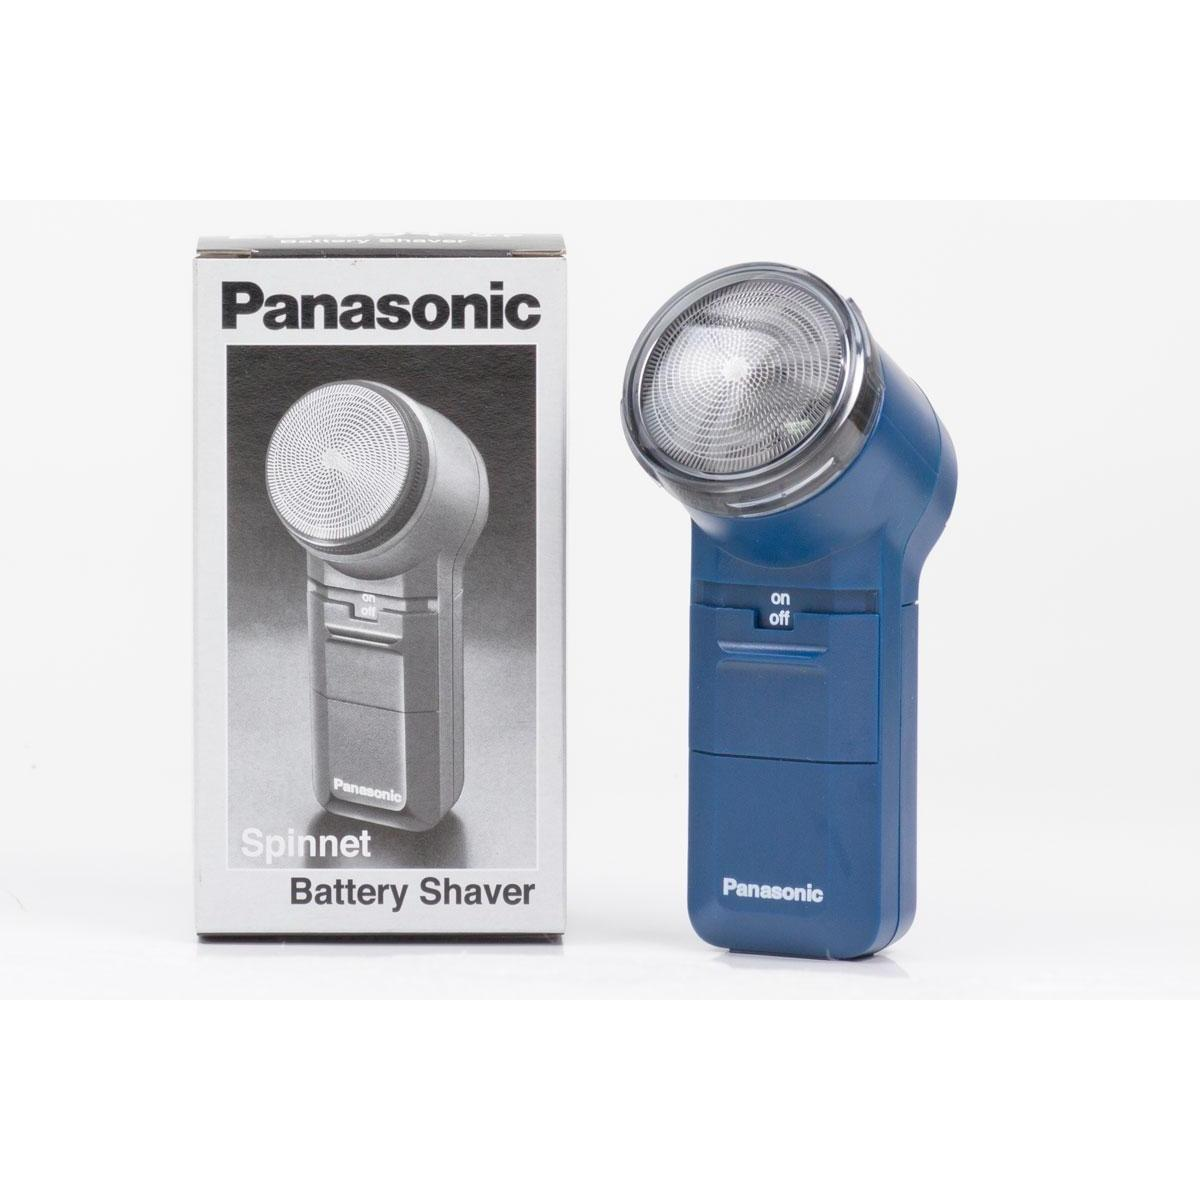 Who Sells The Cheapest Panasonic Spinnet Battery Shaver Es534 Online